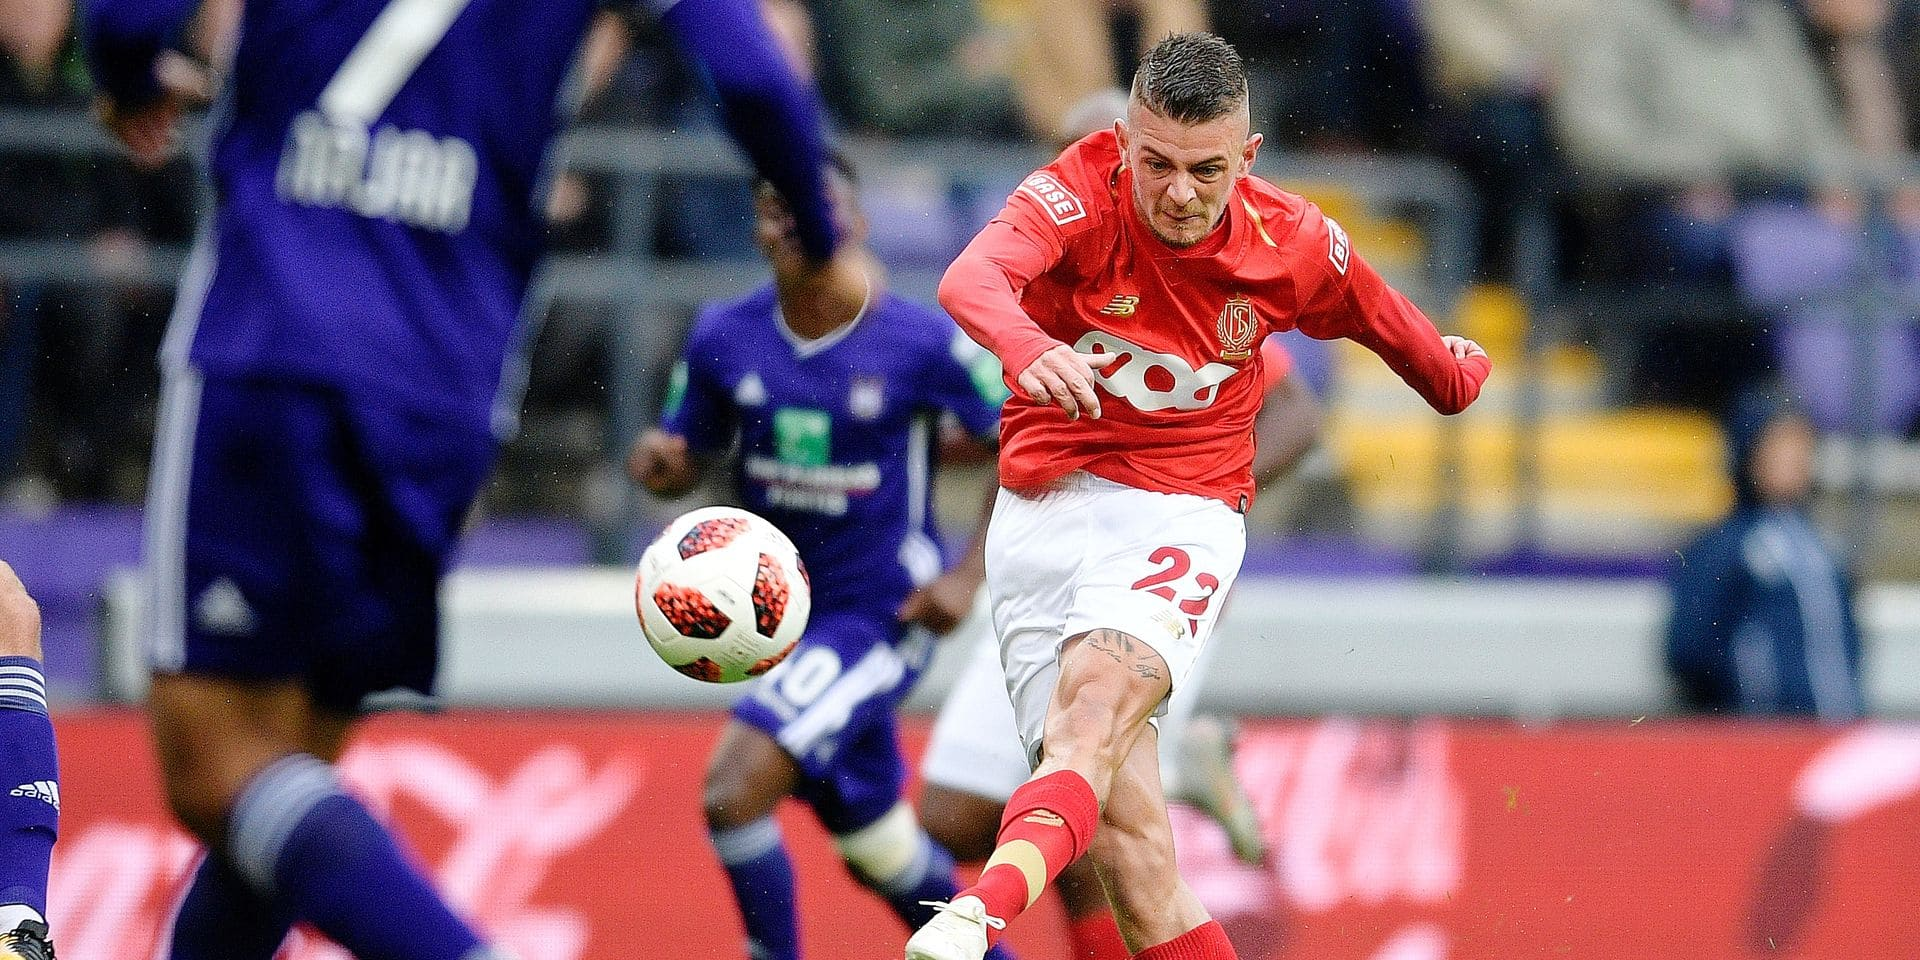 Standard's Maxime Lestienne pictured in action during the soccer match between RSC Anderlecht and Standard de Liege, Sunday 23 September 2018 in Brussels, on the eighth day of the 'Jupiler Pro League' Belgian soccer championship season 2018-2019. BELGA PHOTO YORICK JANSENS